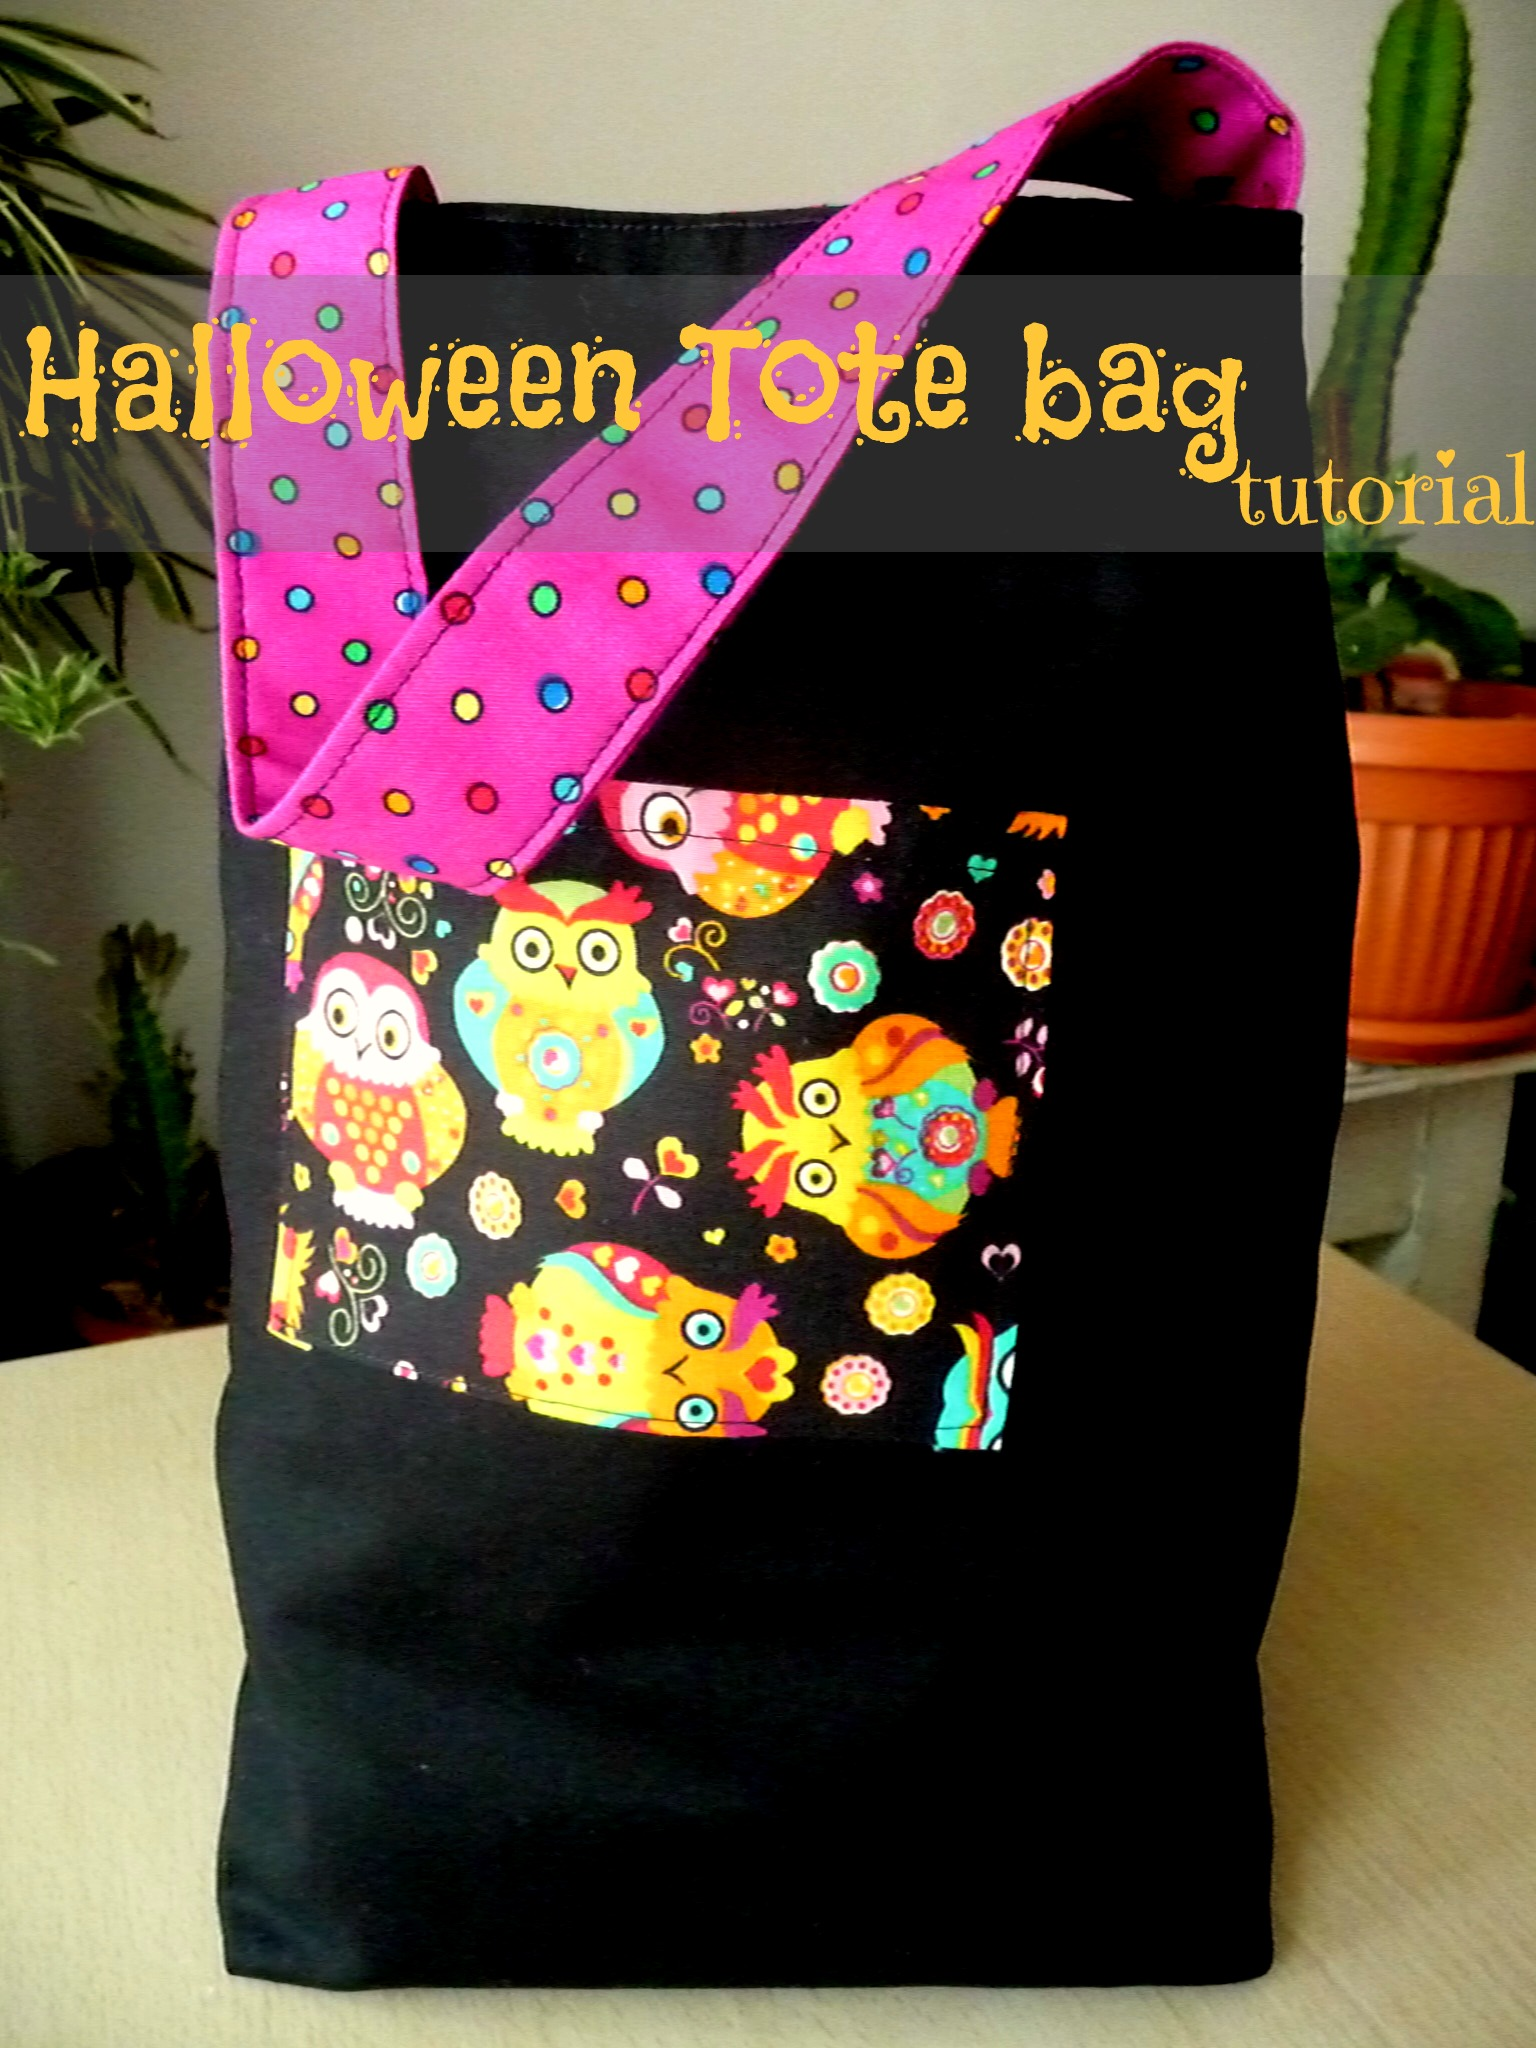 Halloween is approaching pretty fast and tons of Halloween activities come to mind. Here's a super easy and quick Halloween tote bag to inspire you!